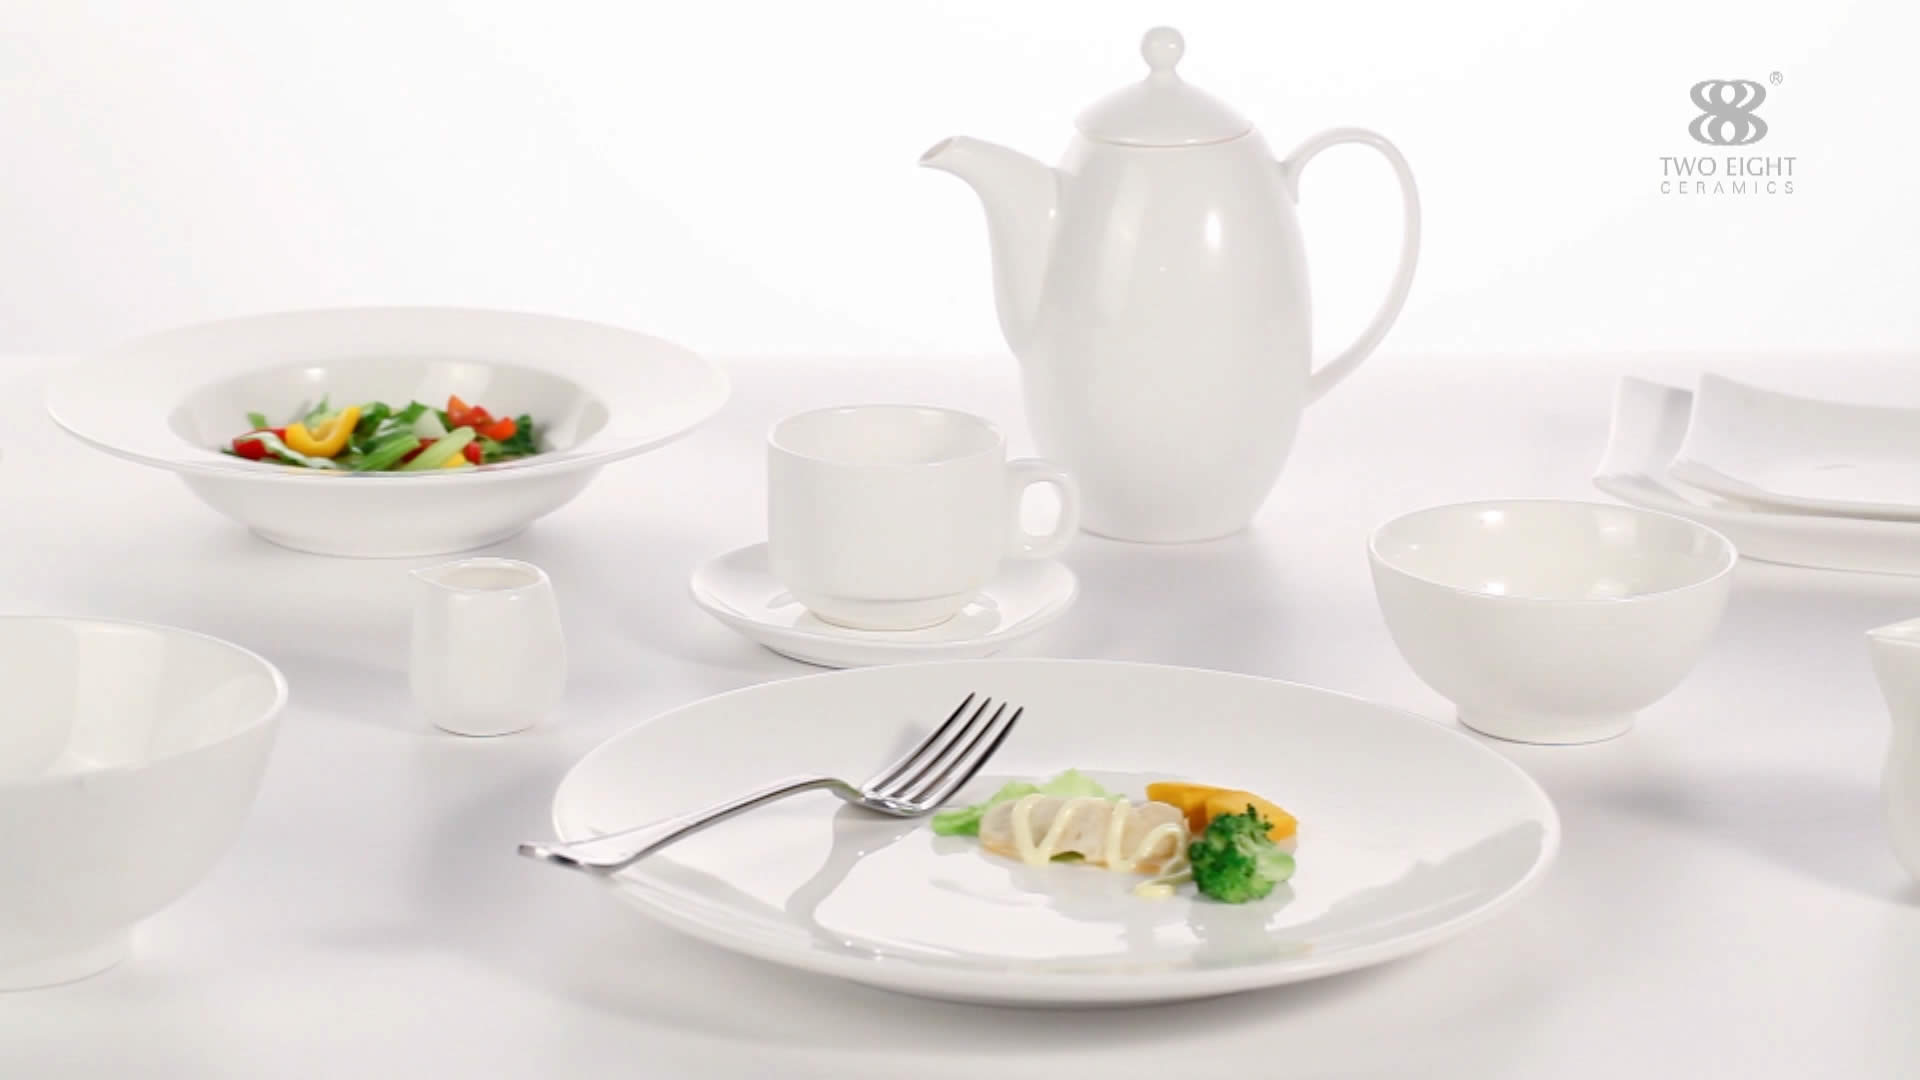 Pure white, organic and functional dining plates set - TW32